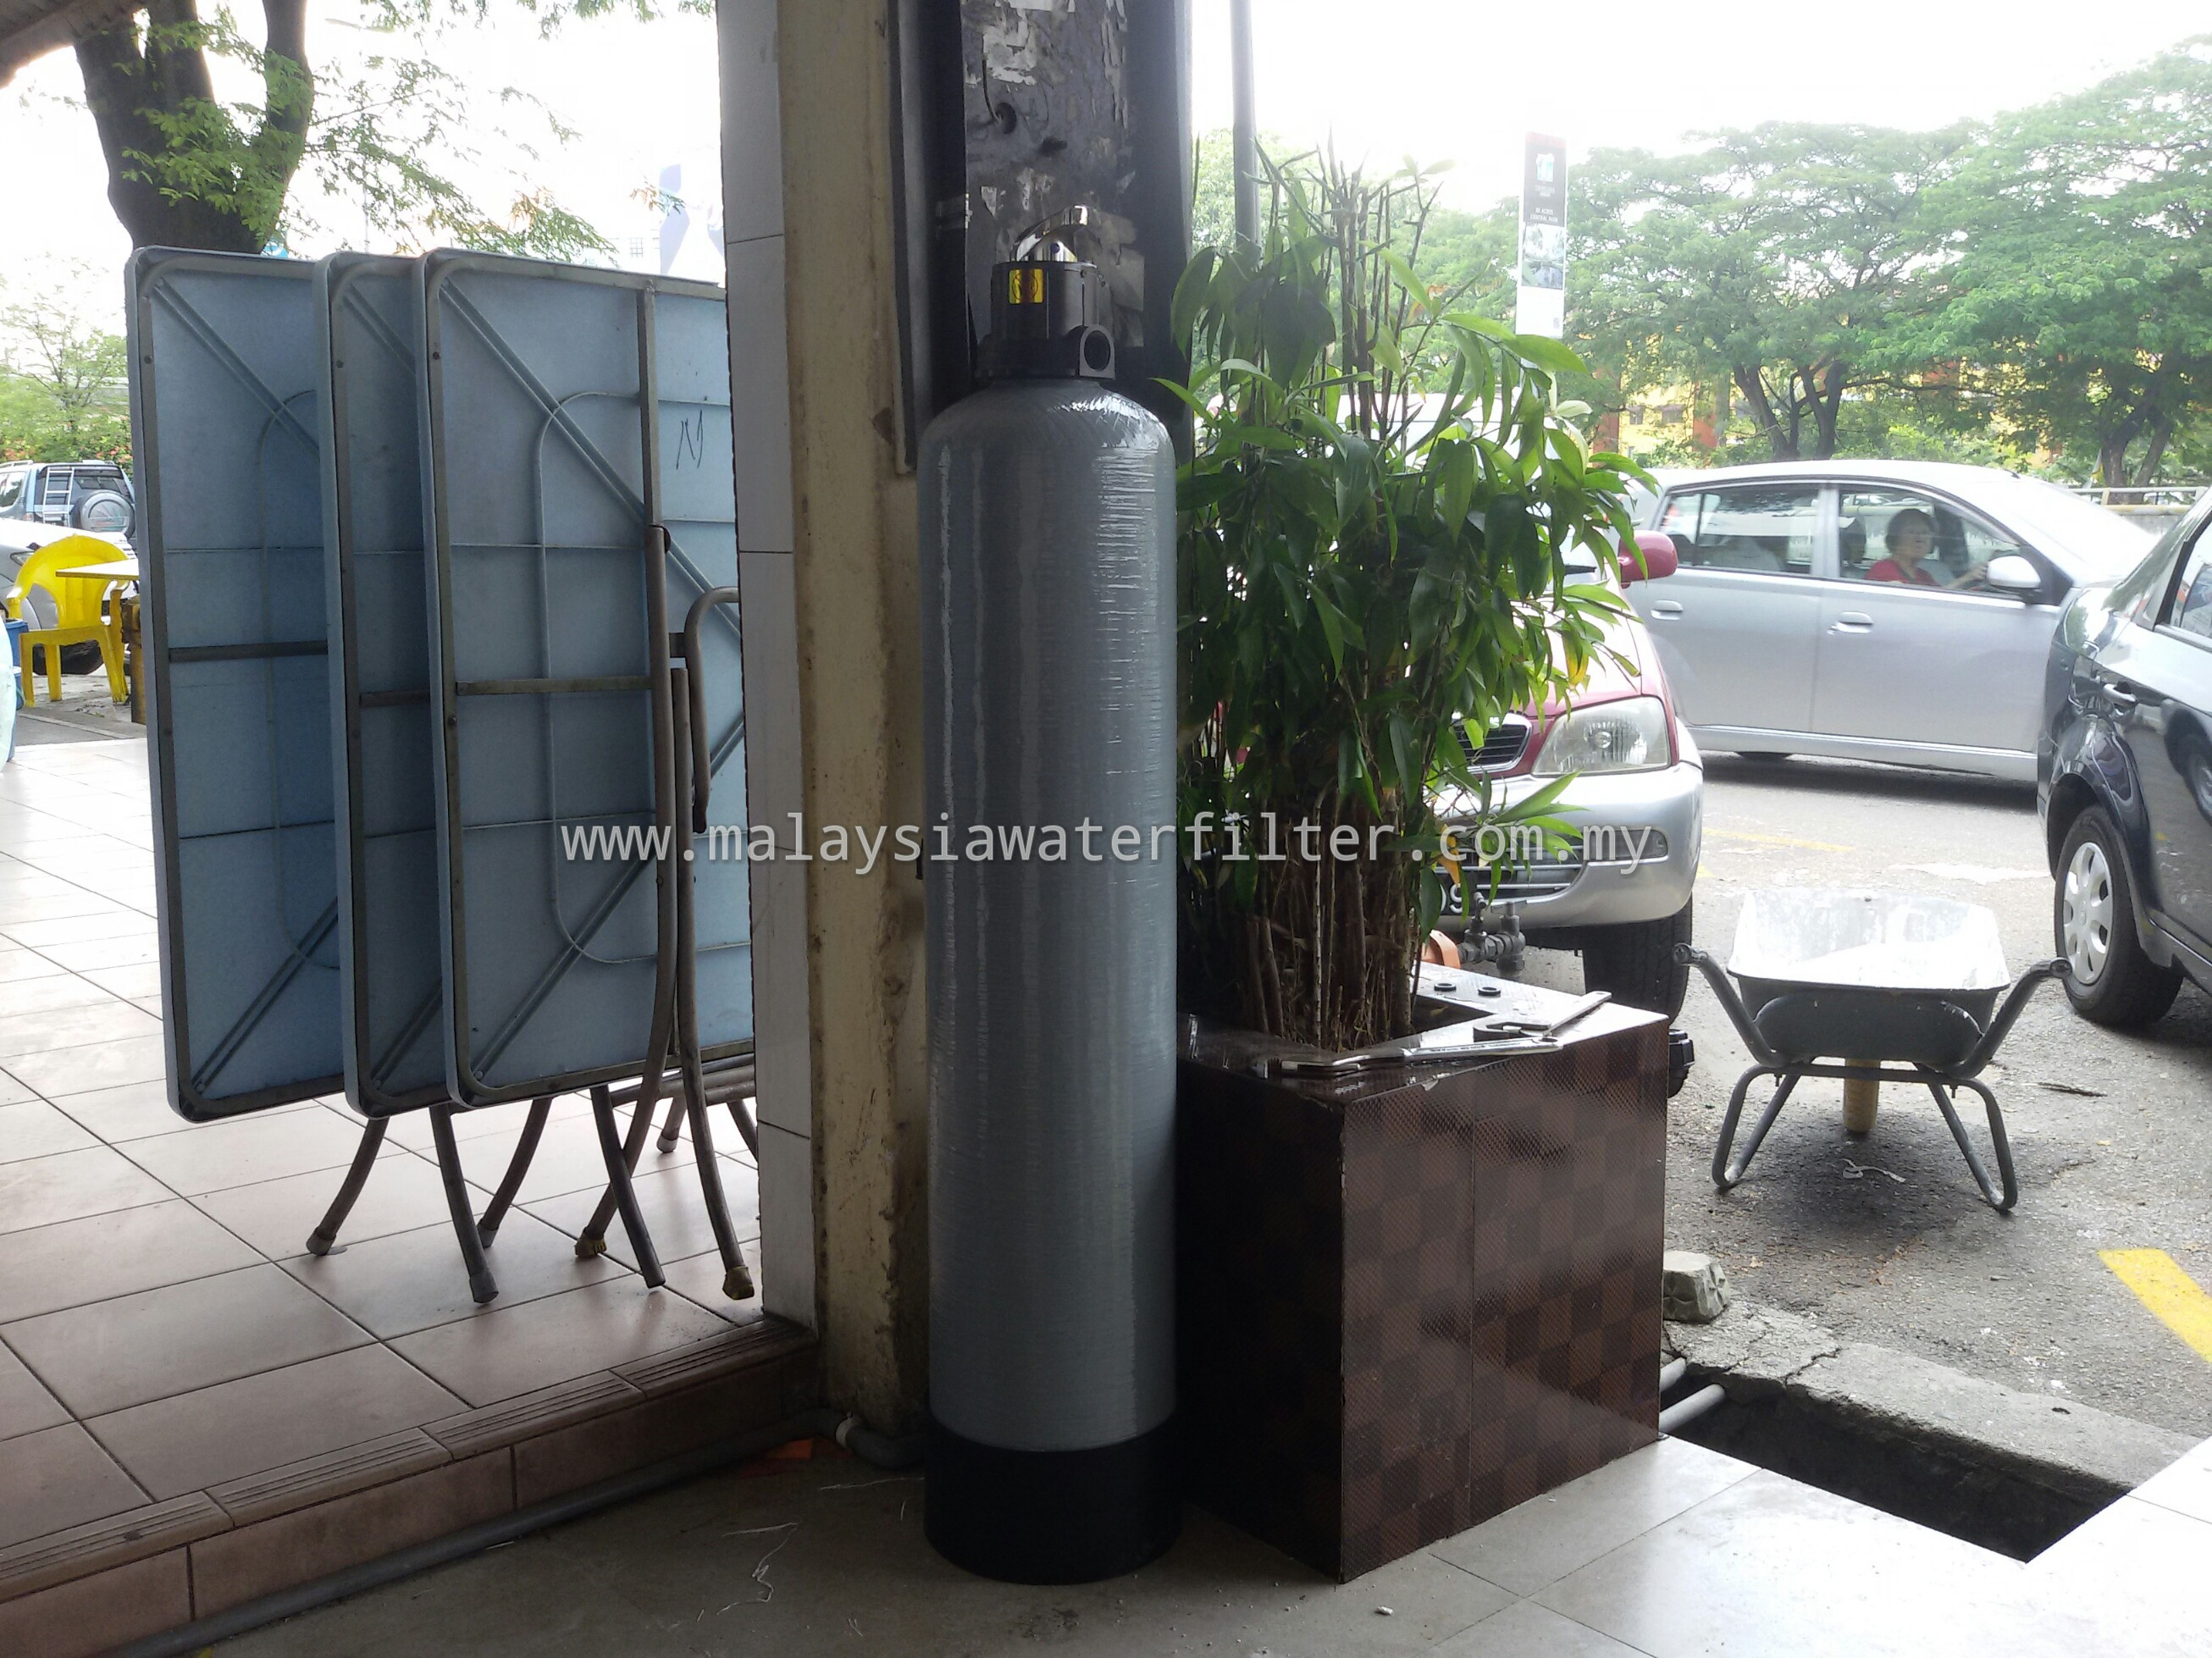 Installation case 25 frp 09 x42 fiberglass outdoor for Garden water filter system